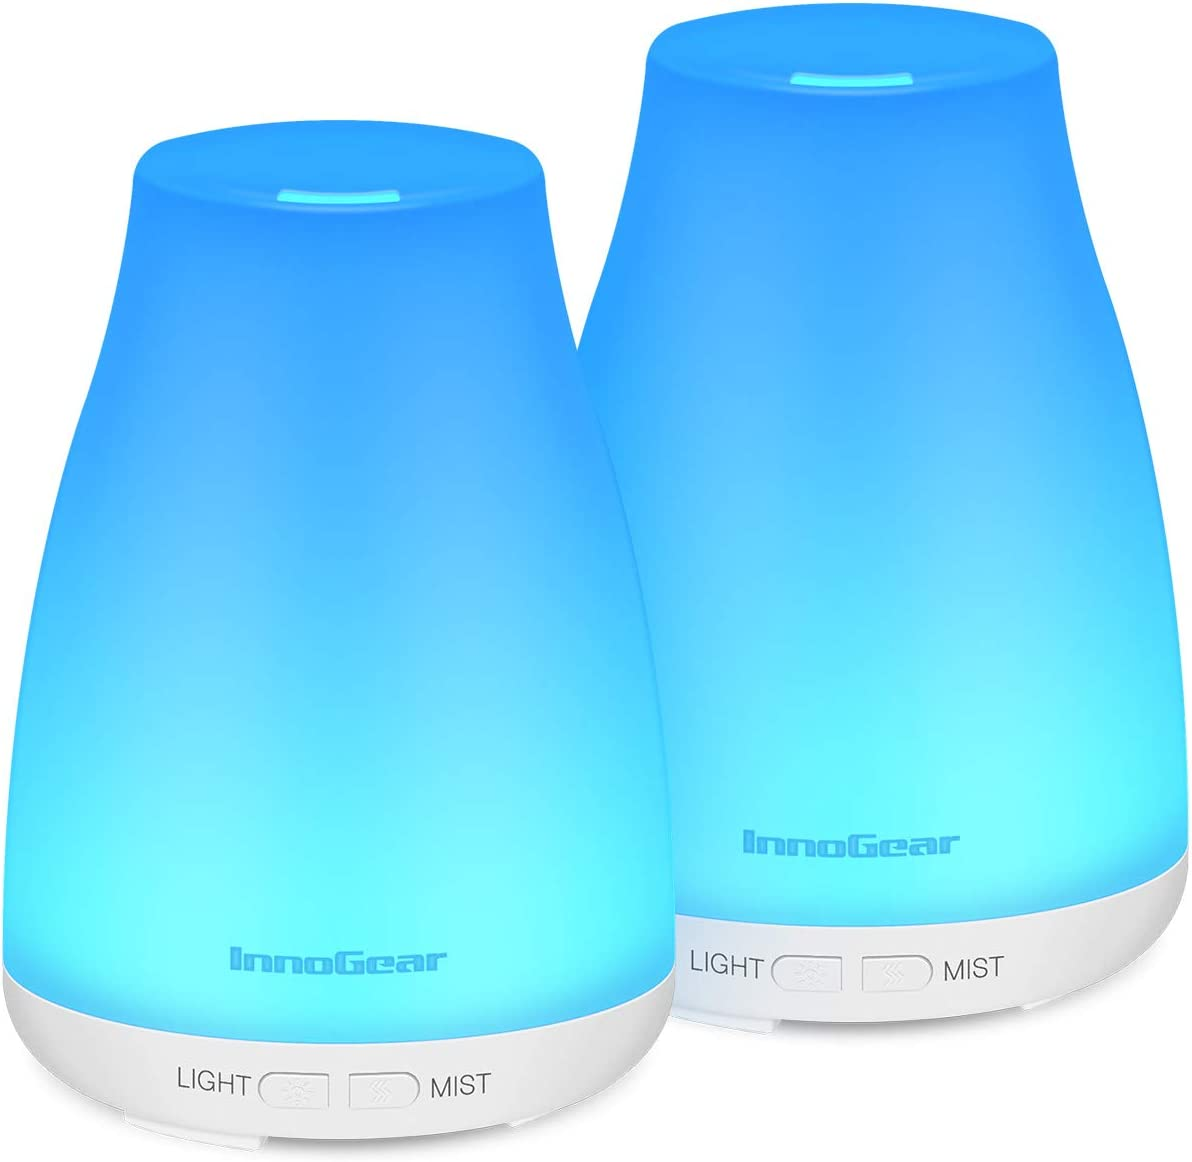 InnoGear 2 Pack Essential Oil Diffuser, 150ml Aromatherapy Aroma Diffusers Ultrasonic Cool Mist Humidifier Waterless Auto Shut Off for Home Office